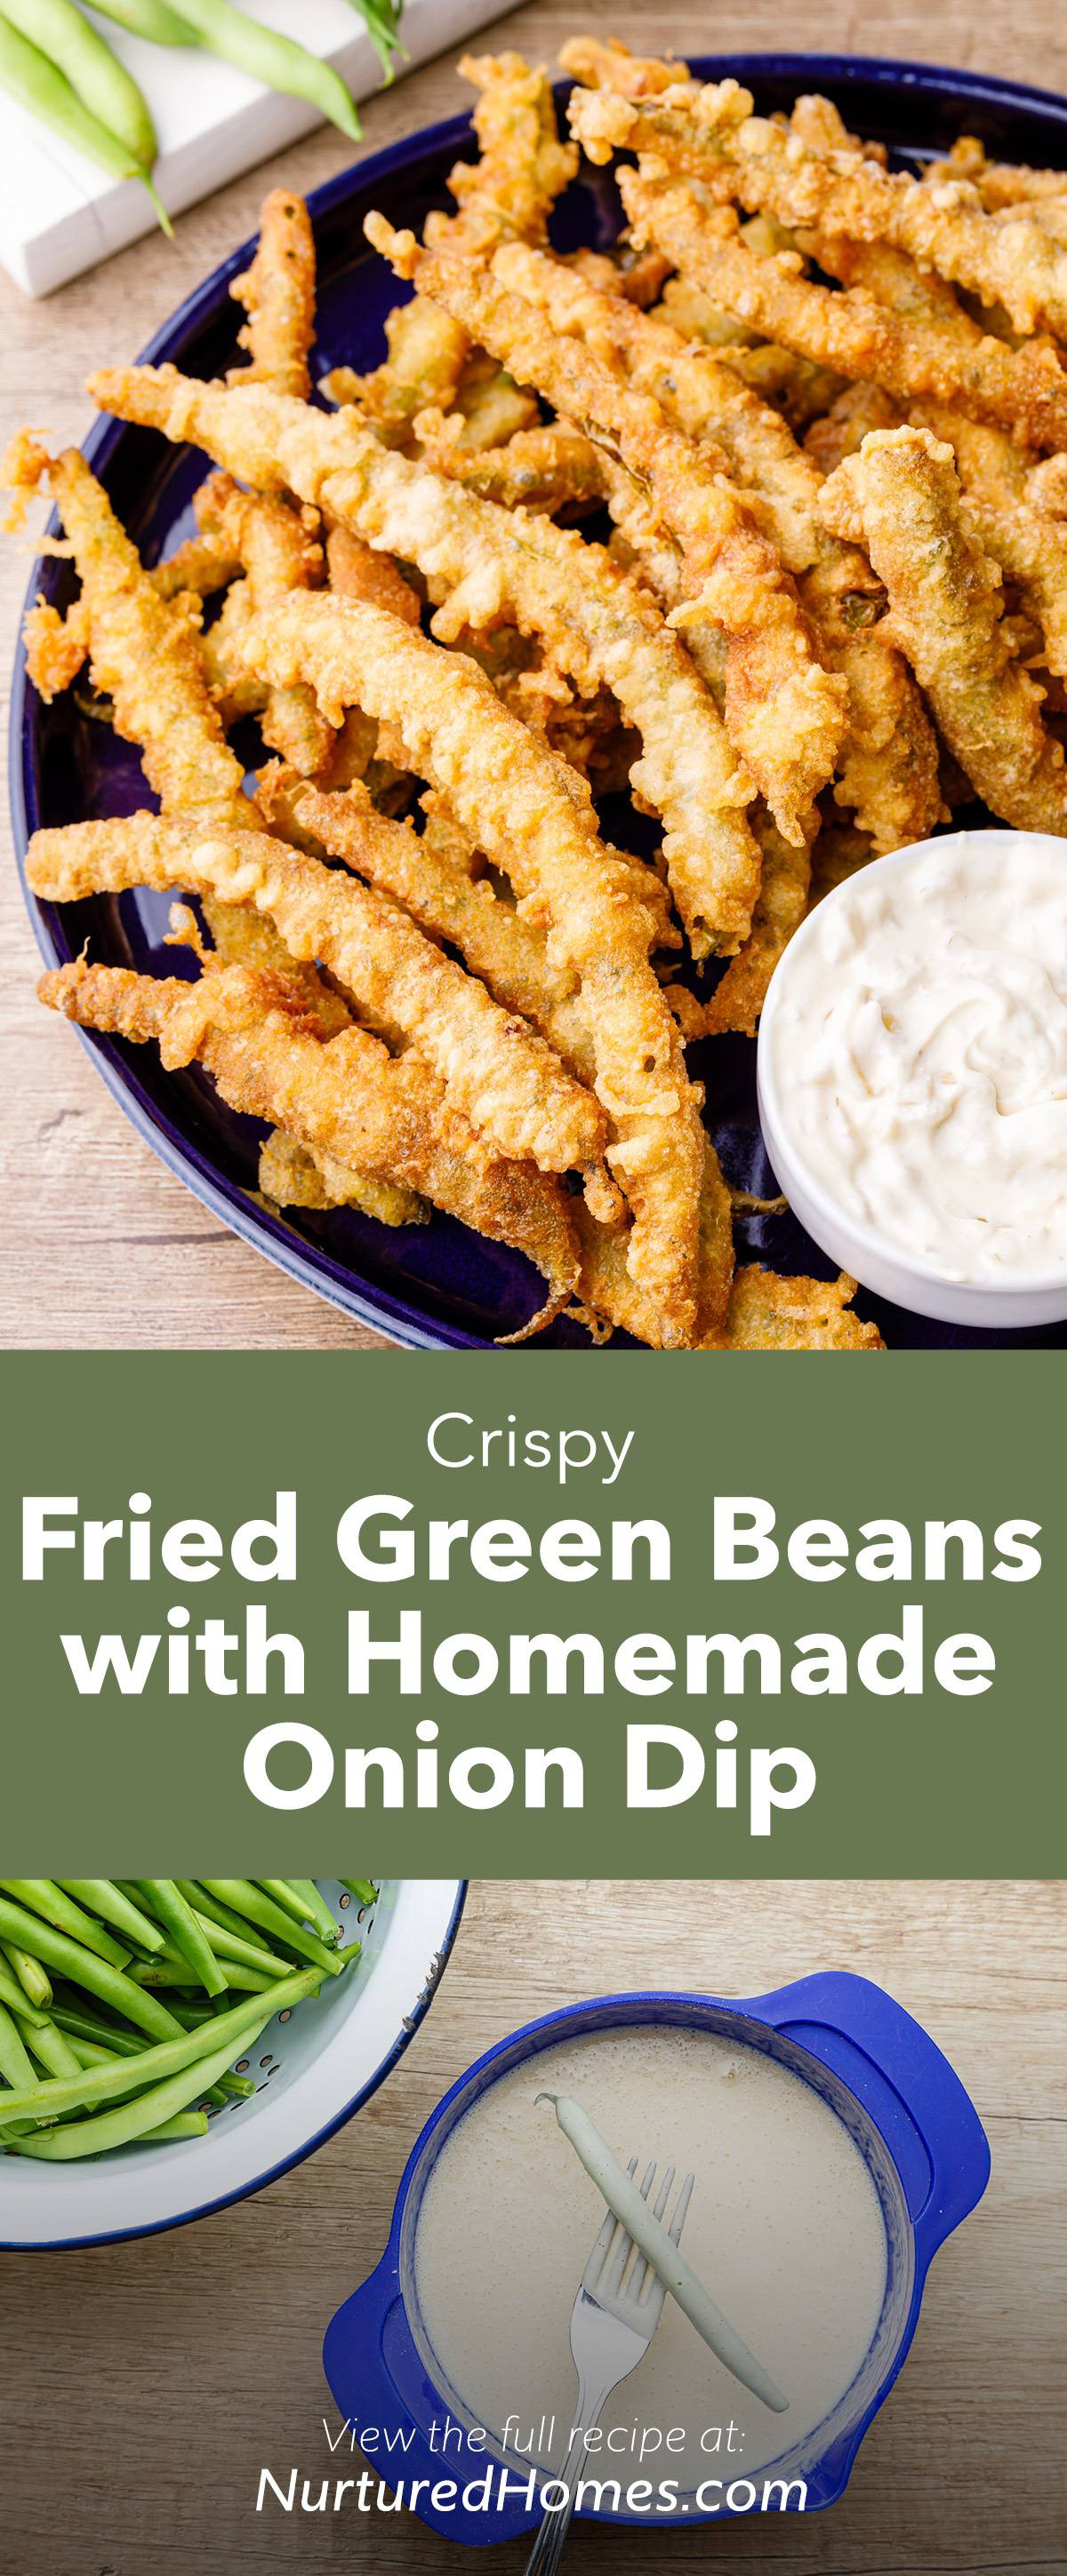 Crispy Fried Green Beans with Onion Dip